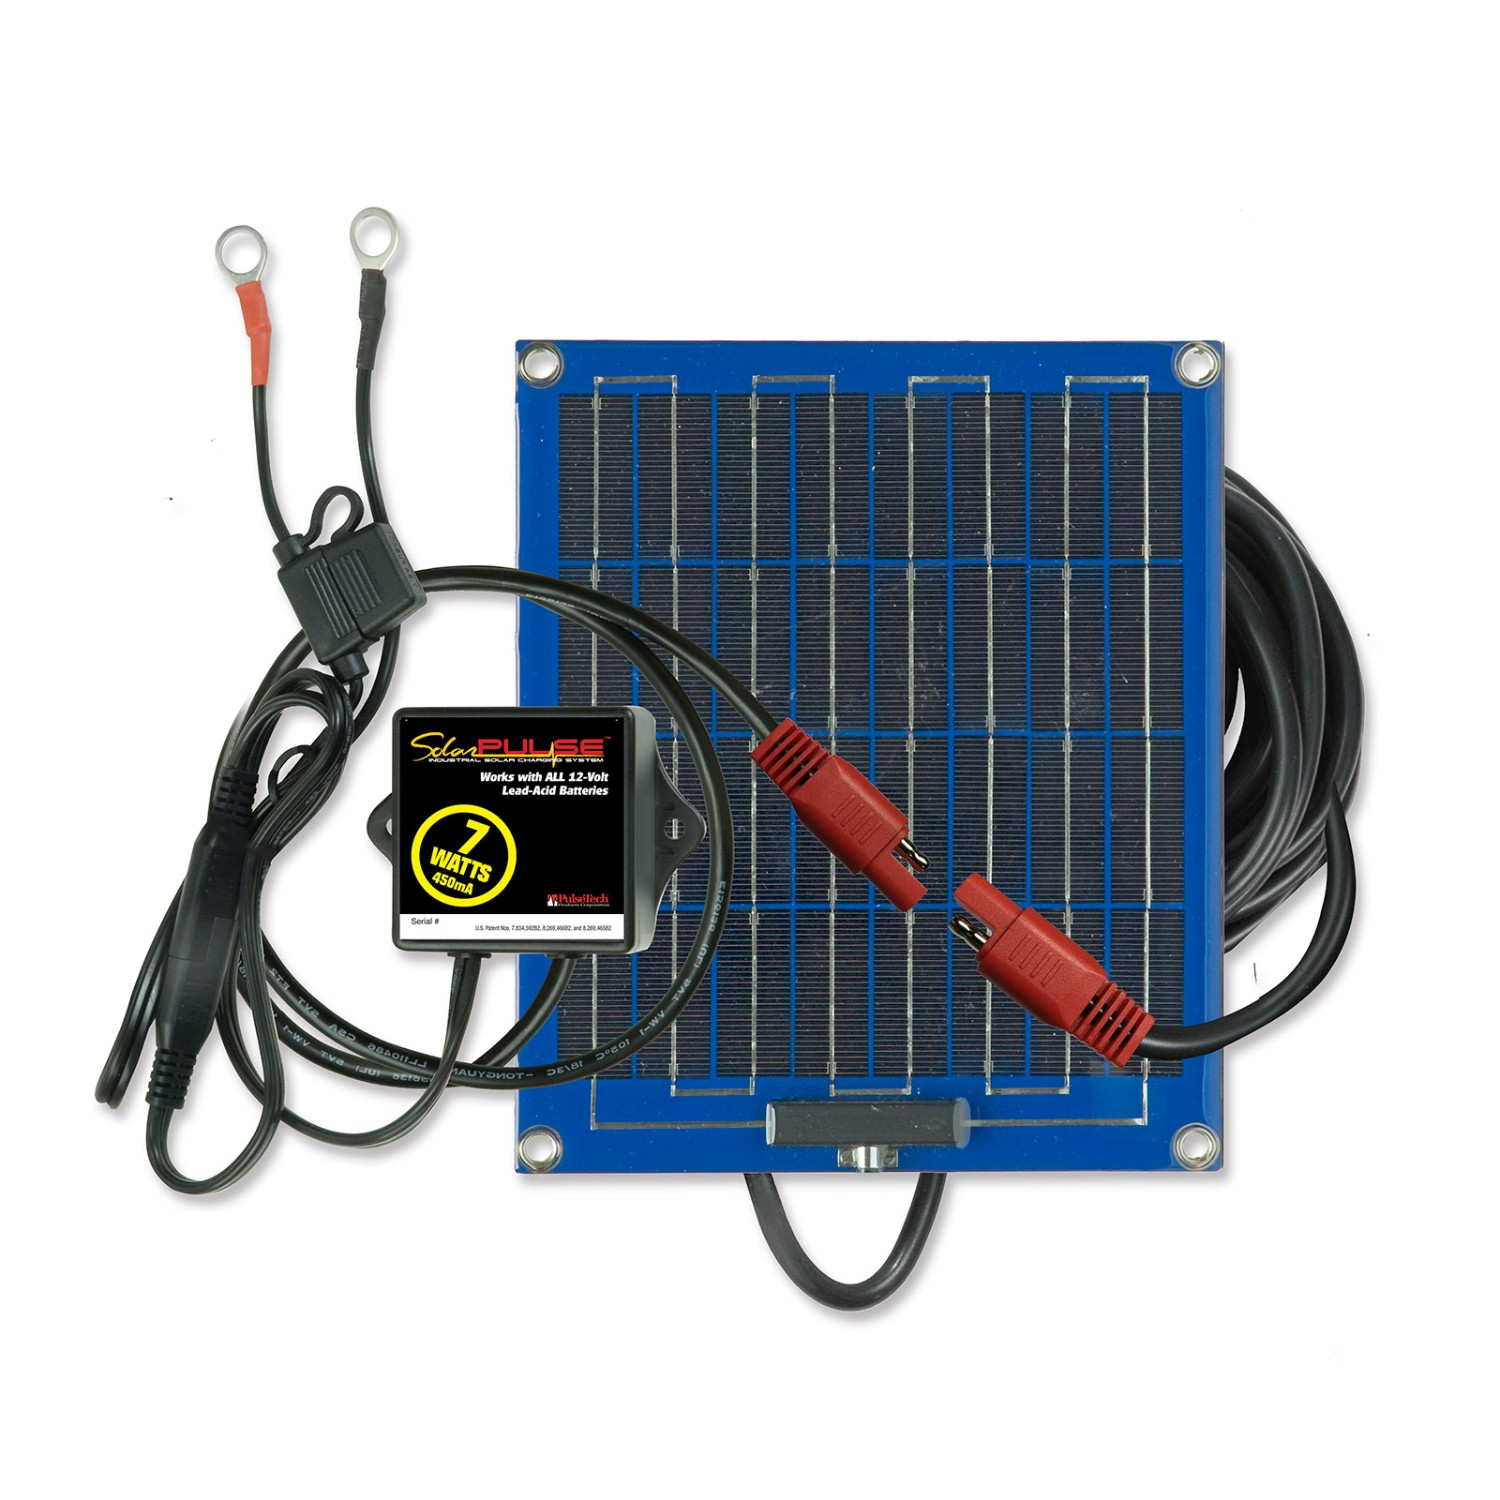 PulseTech SolarPulse SP-7 Solar Battery Charger Maintainer